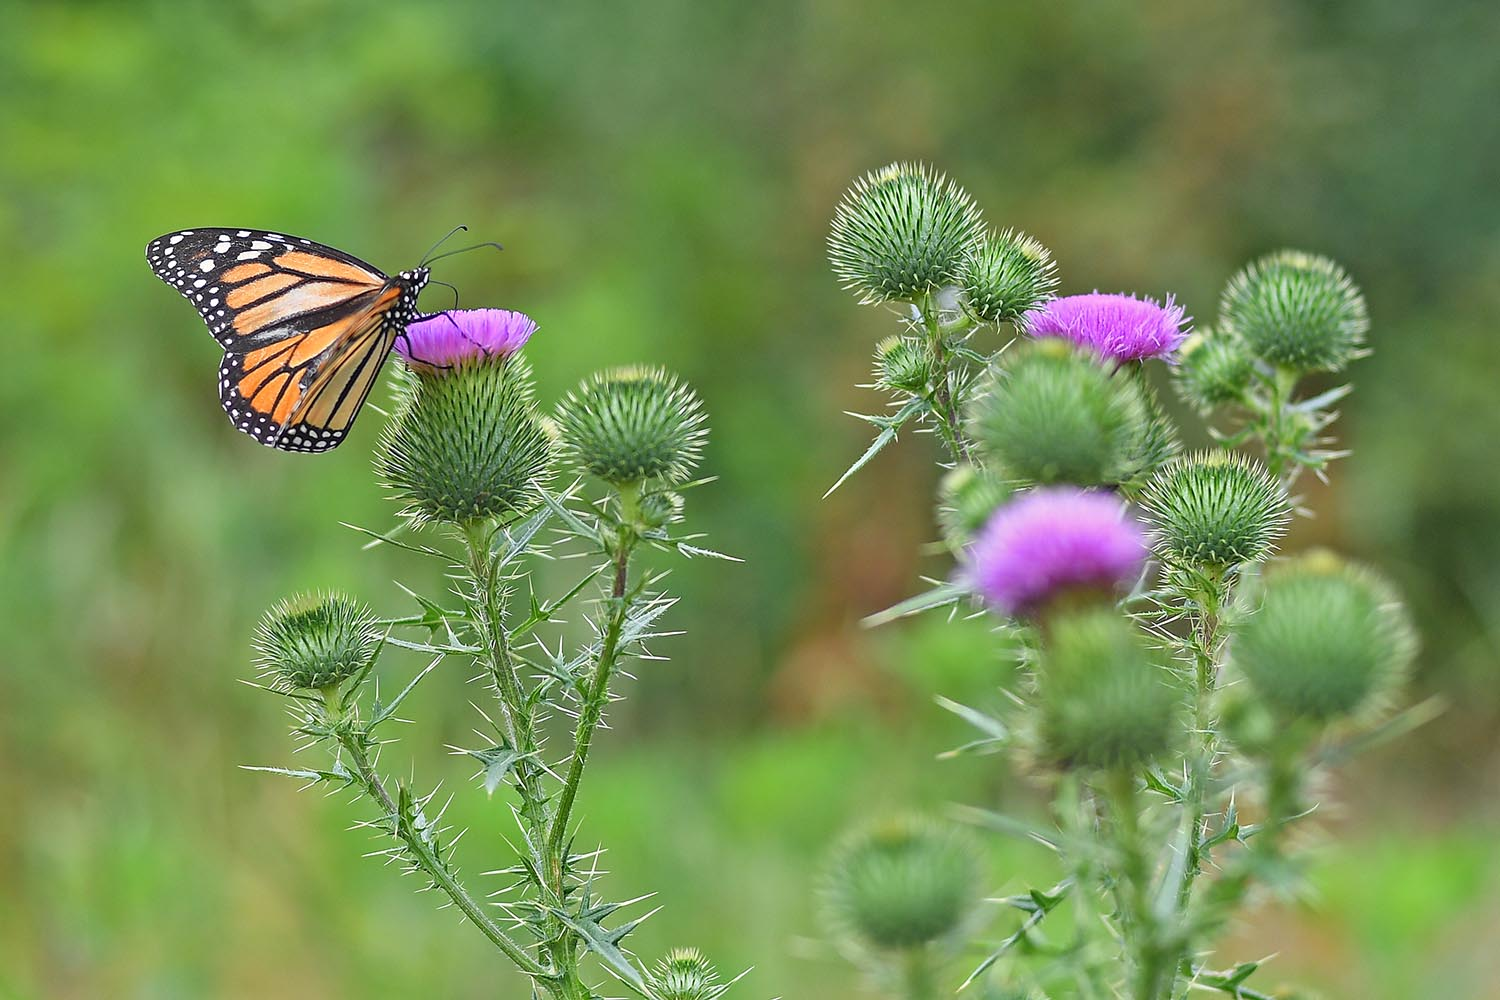 A monarch butterfly drinks nectar from a thistle flower.